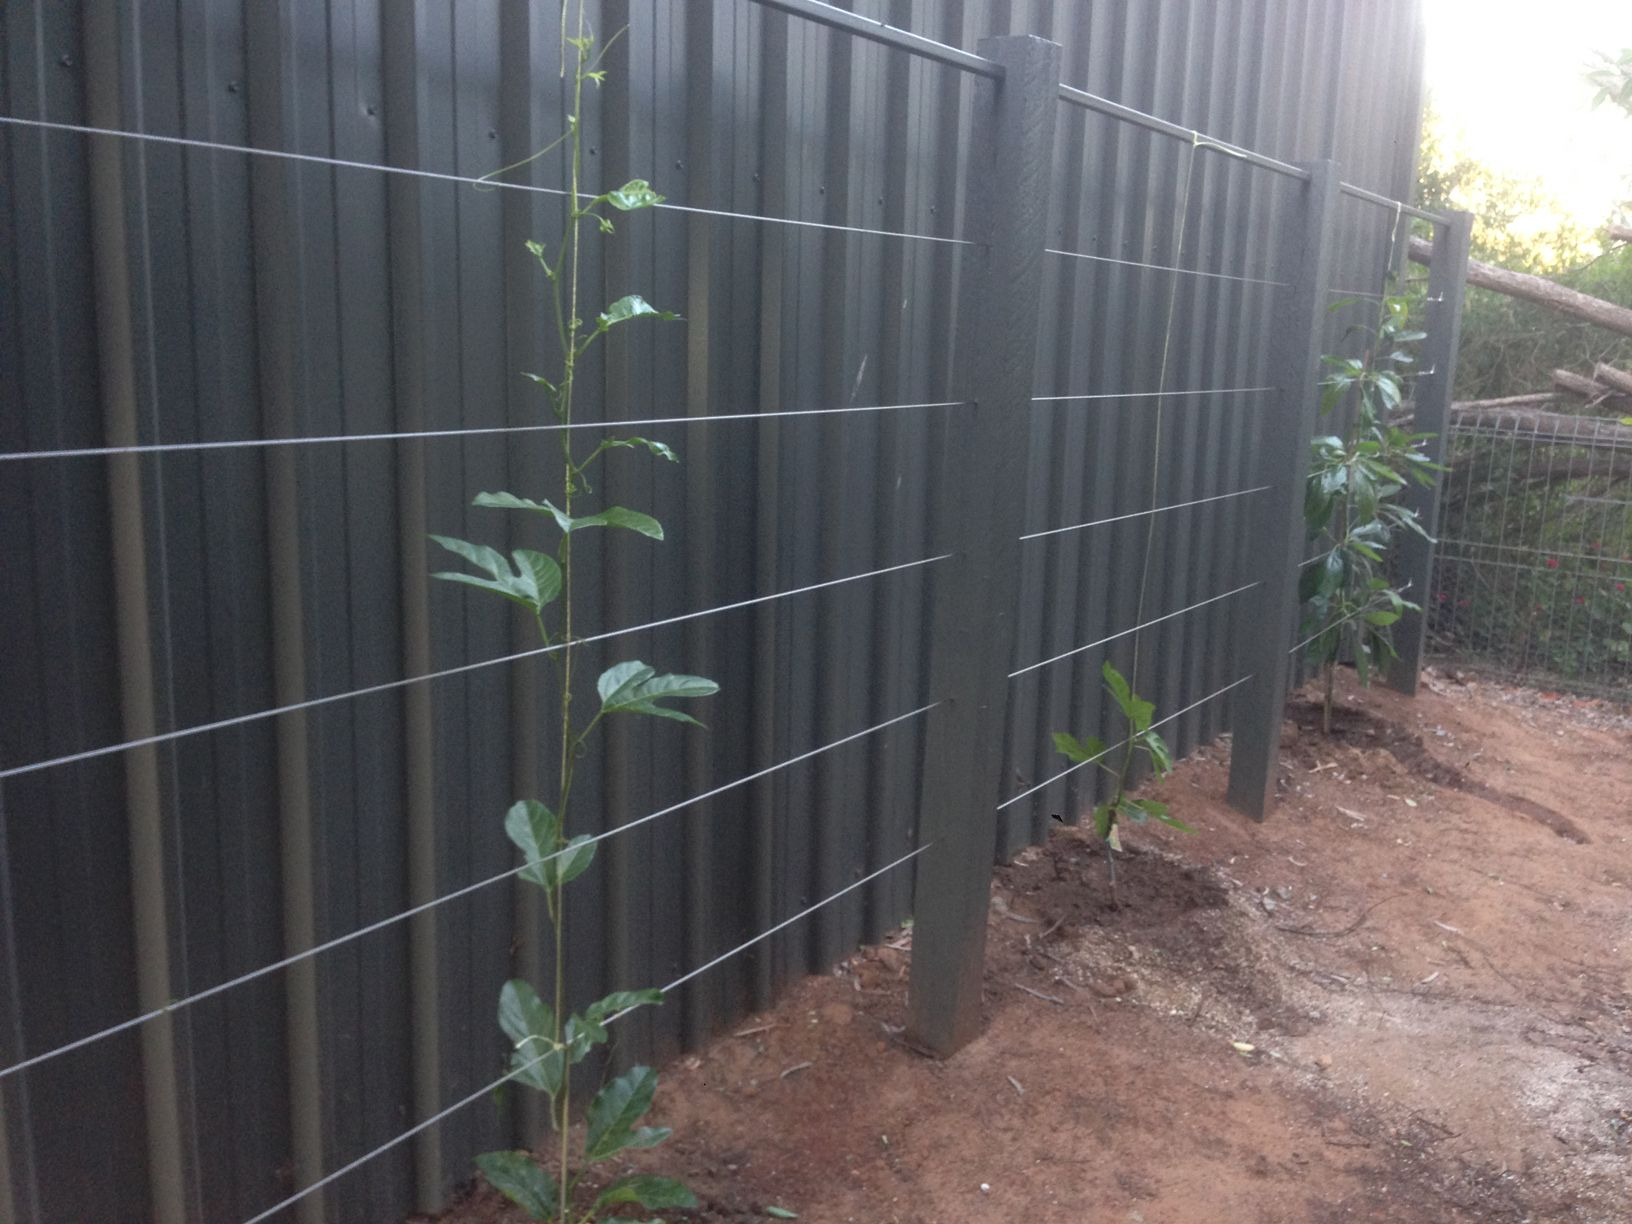 Beautiful esaplier with avocado trees using stainless steel wire ...